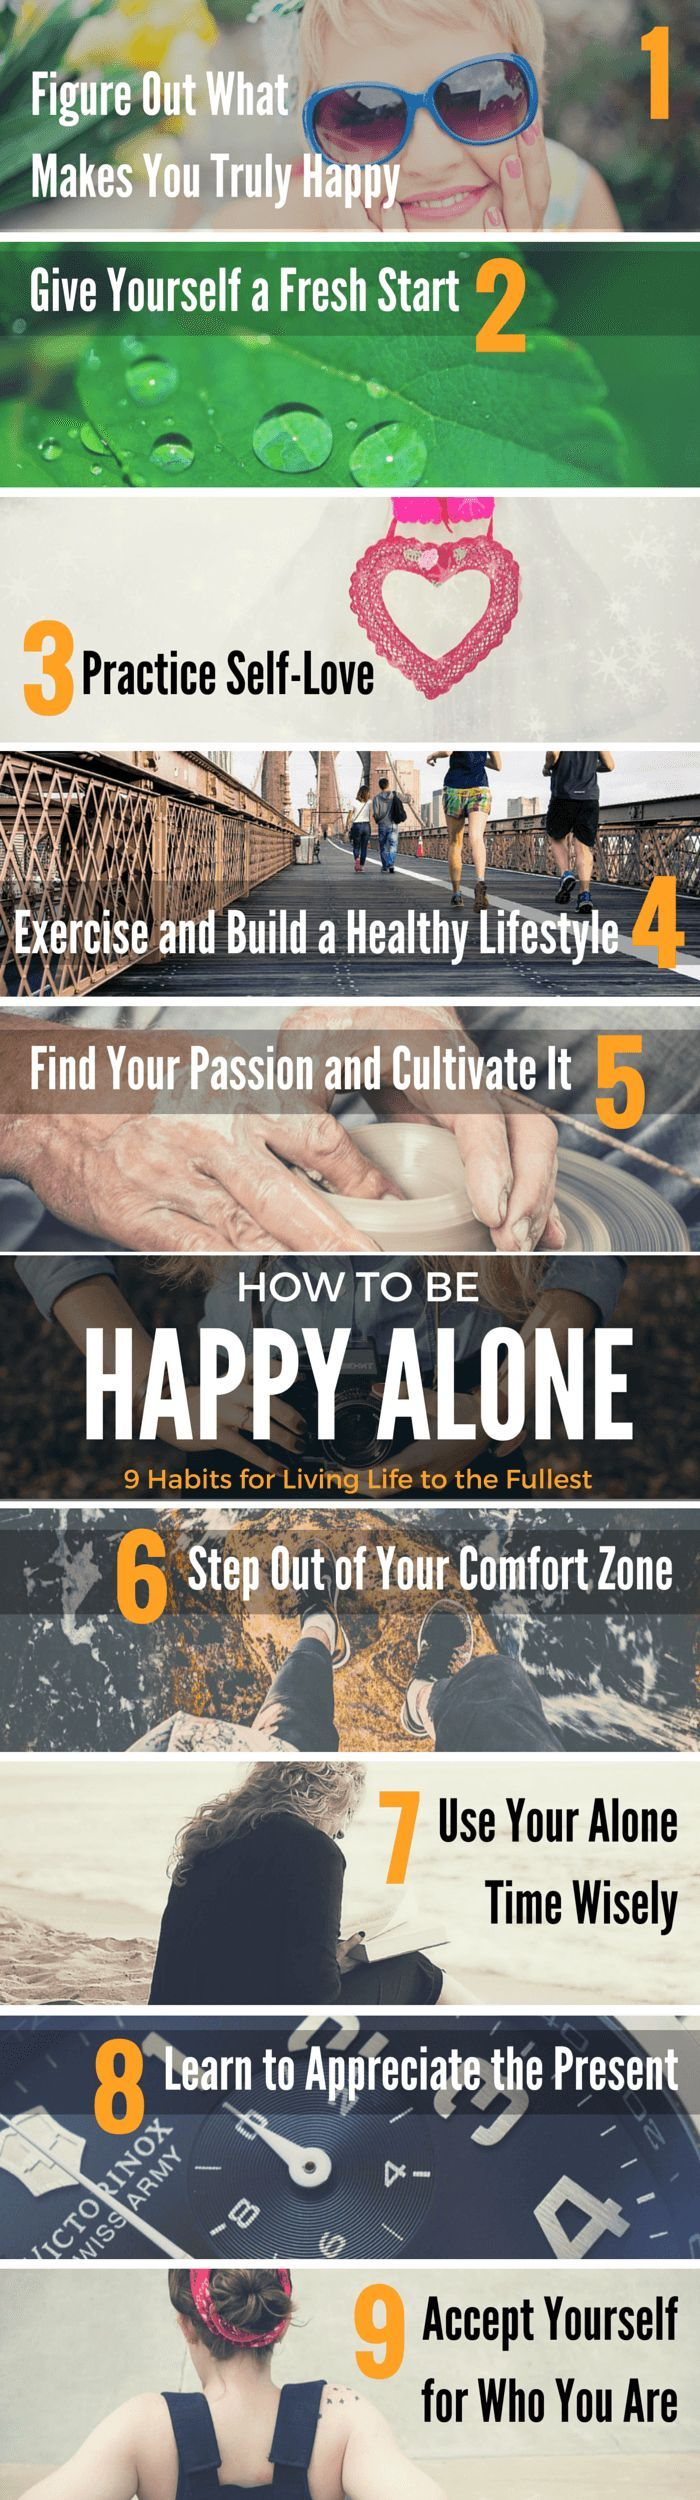 9 Ways On How To Be Happy (and Live) Alone